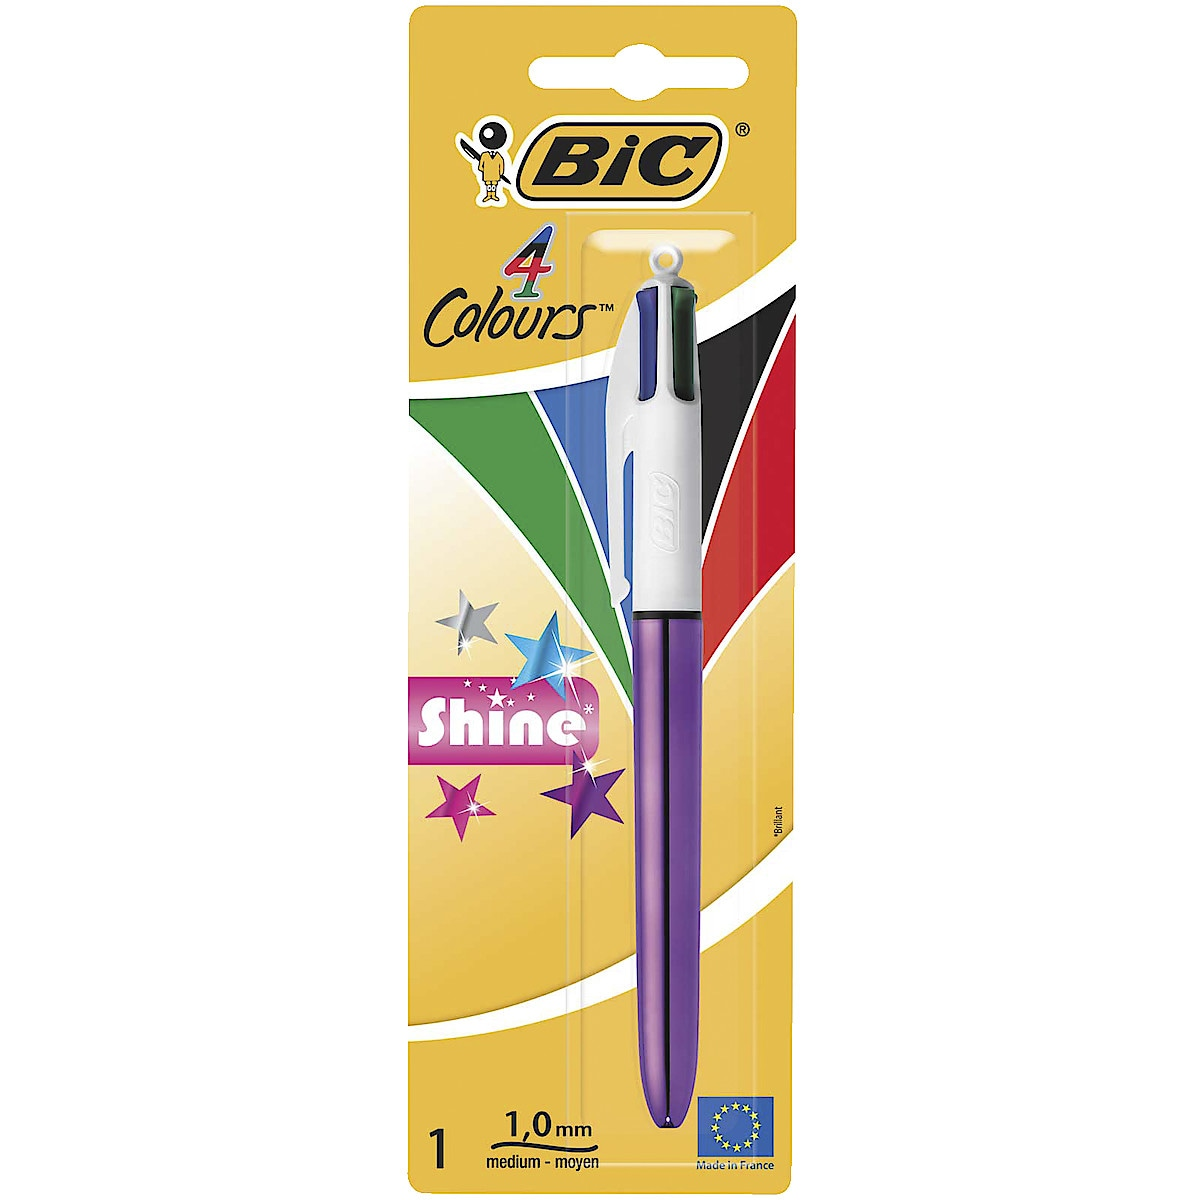 Bic 4 colours Shine Pen